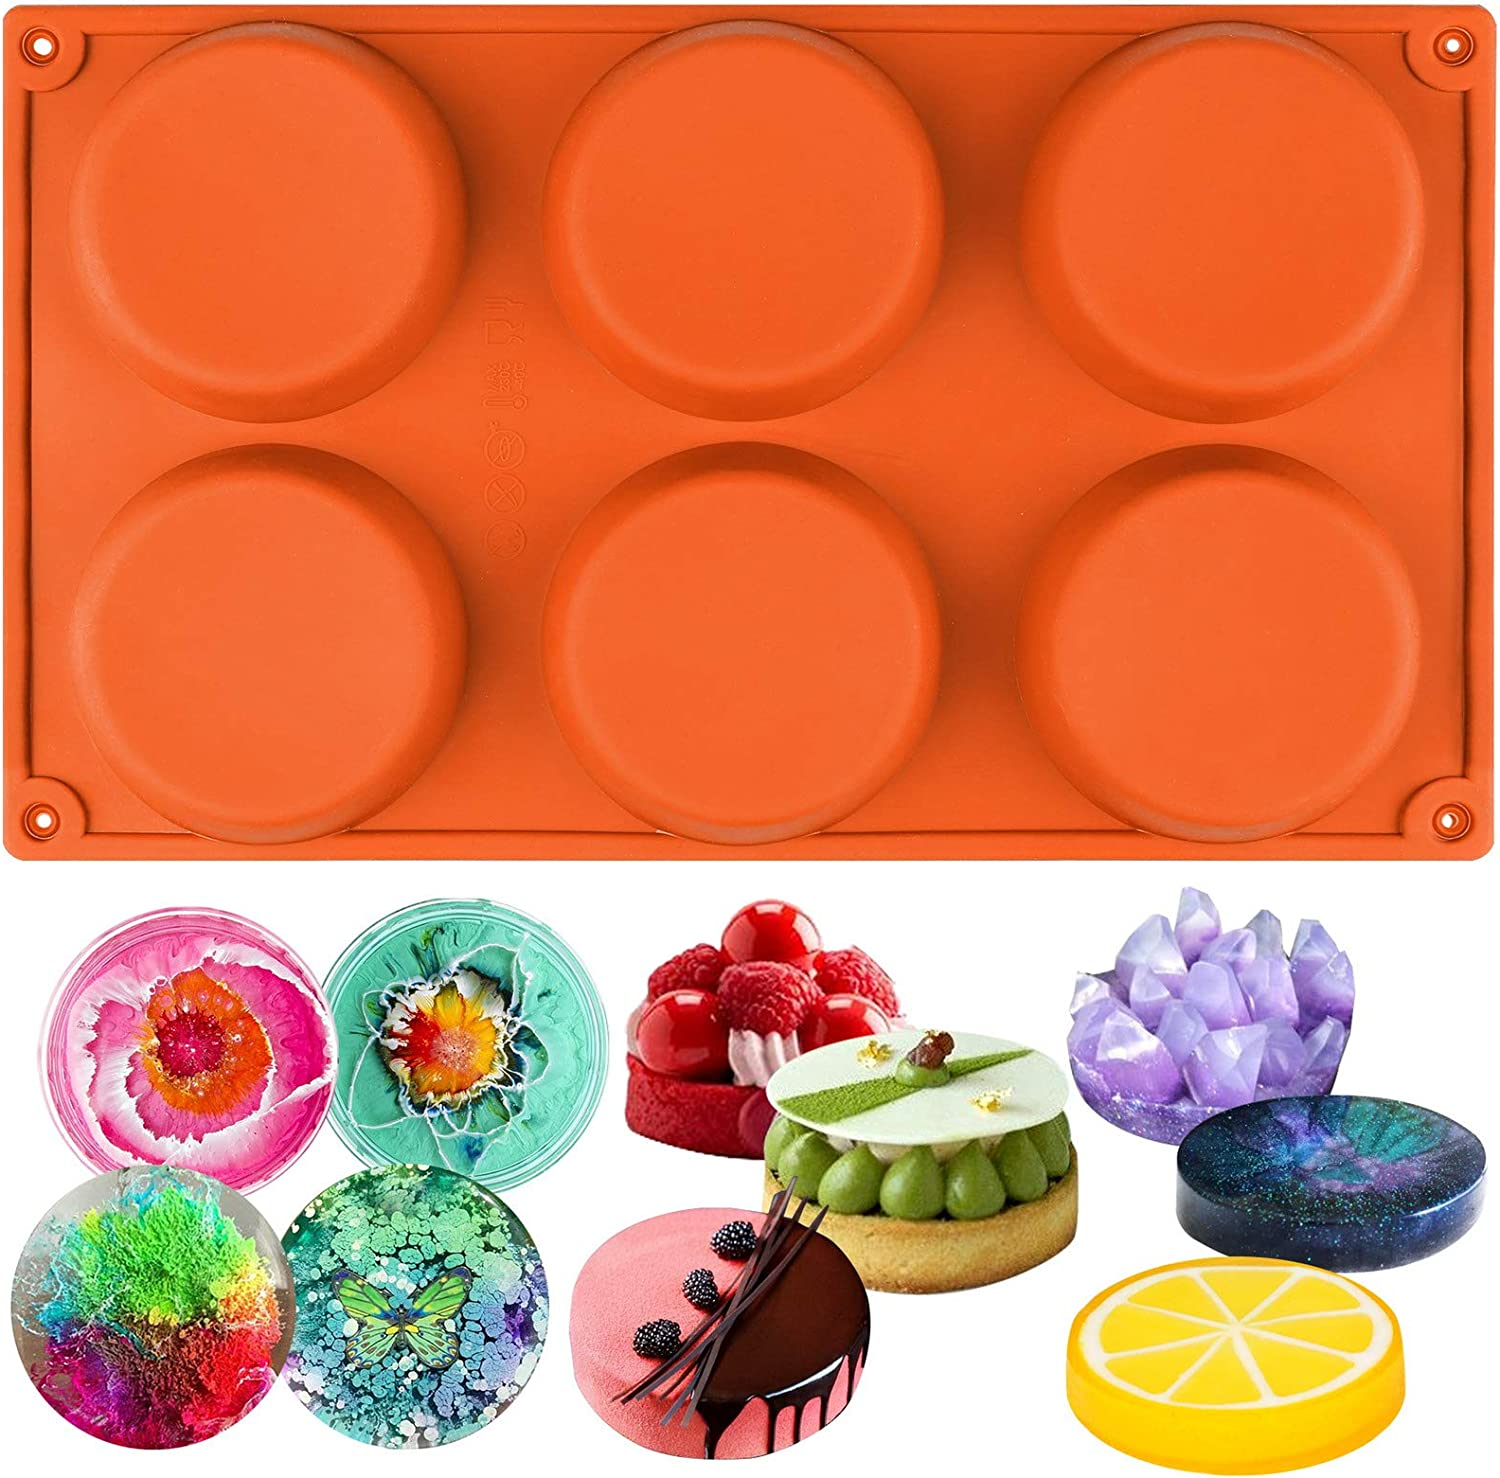 Resin Coaster Custard Webake Silicone Molds for 3 Inch and 4 Inch Round Disc Pan for Cake Tart Bun Muffin Top 6 Cavity Red Set of 2